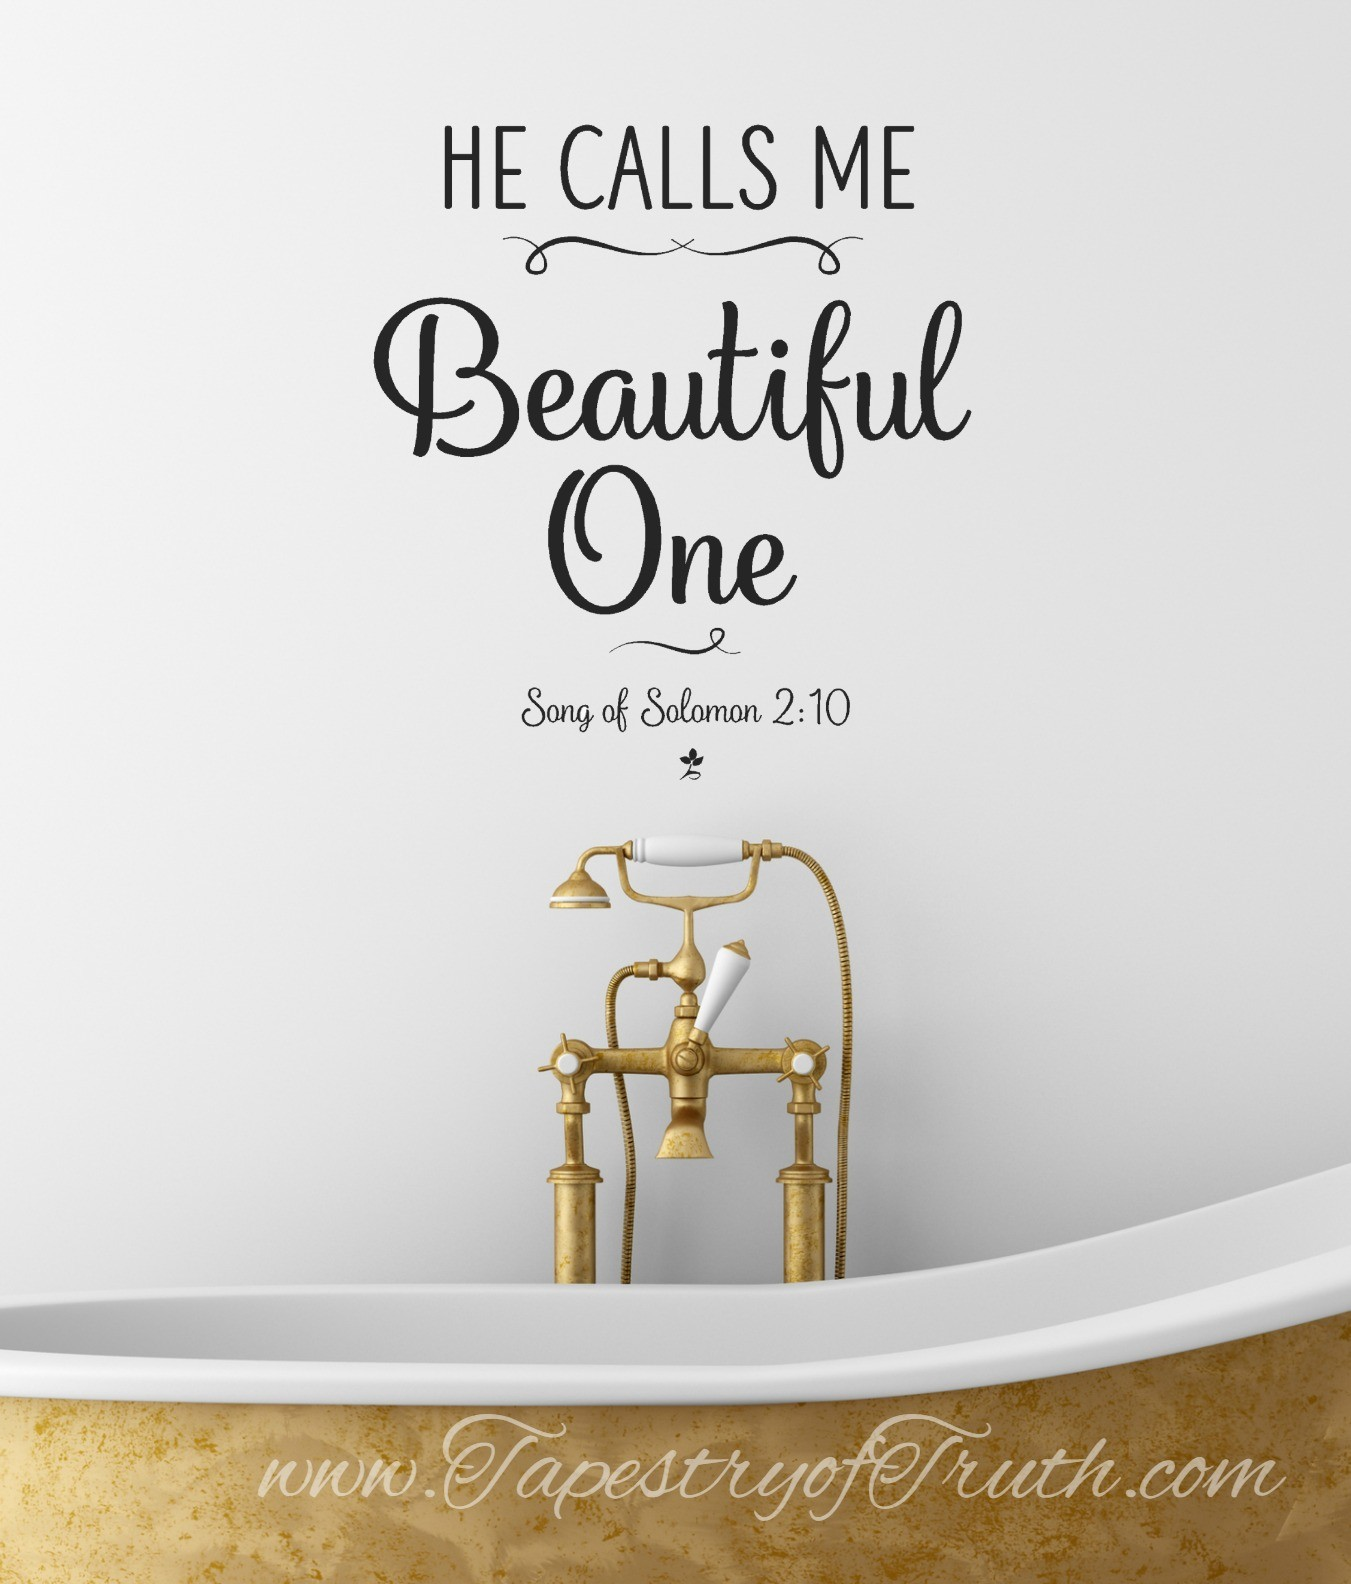 He calls me beautiful one. Song of Solomon 2:10